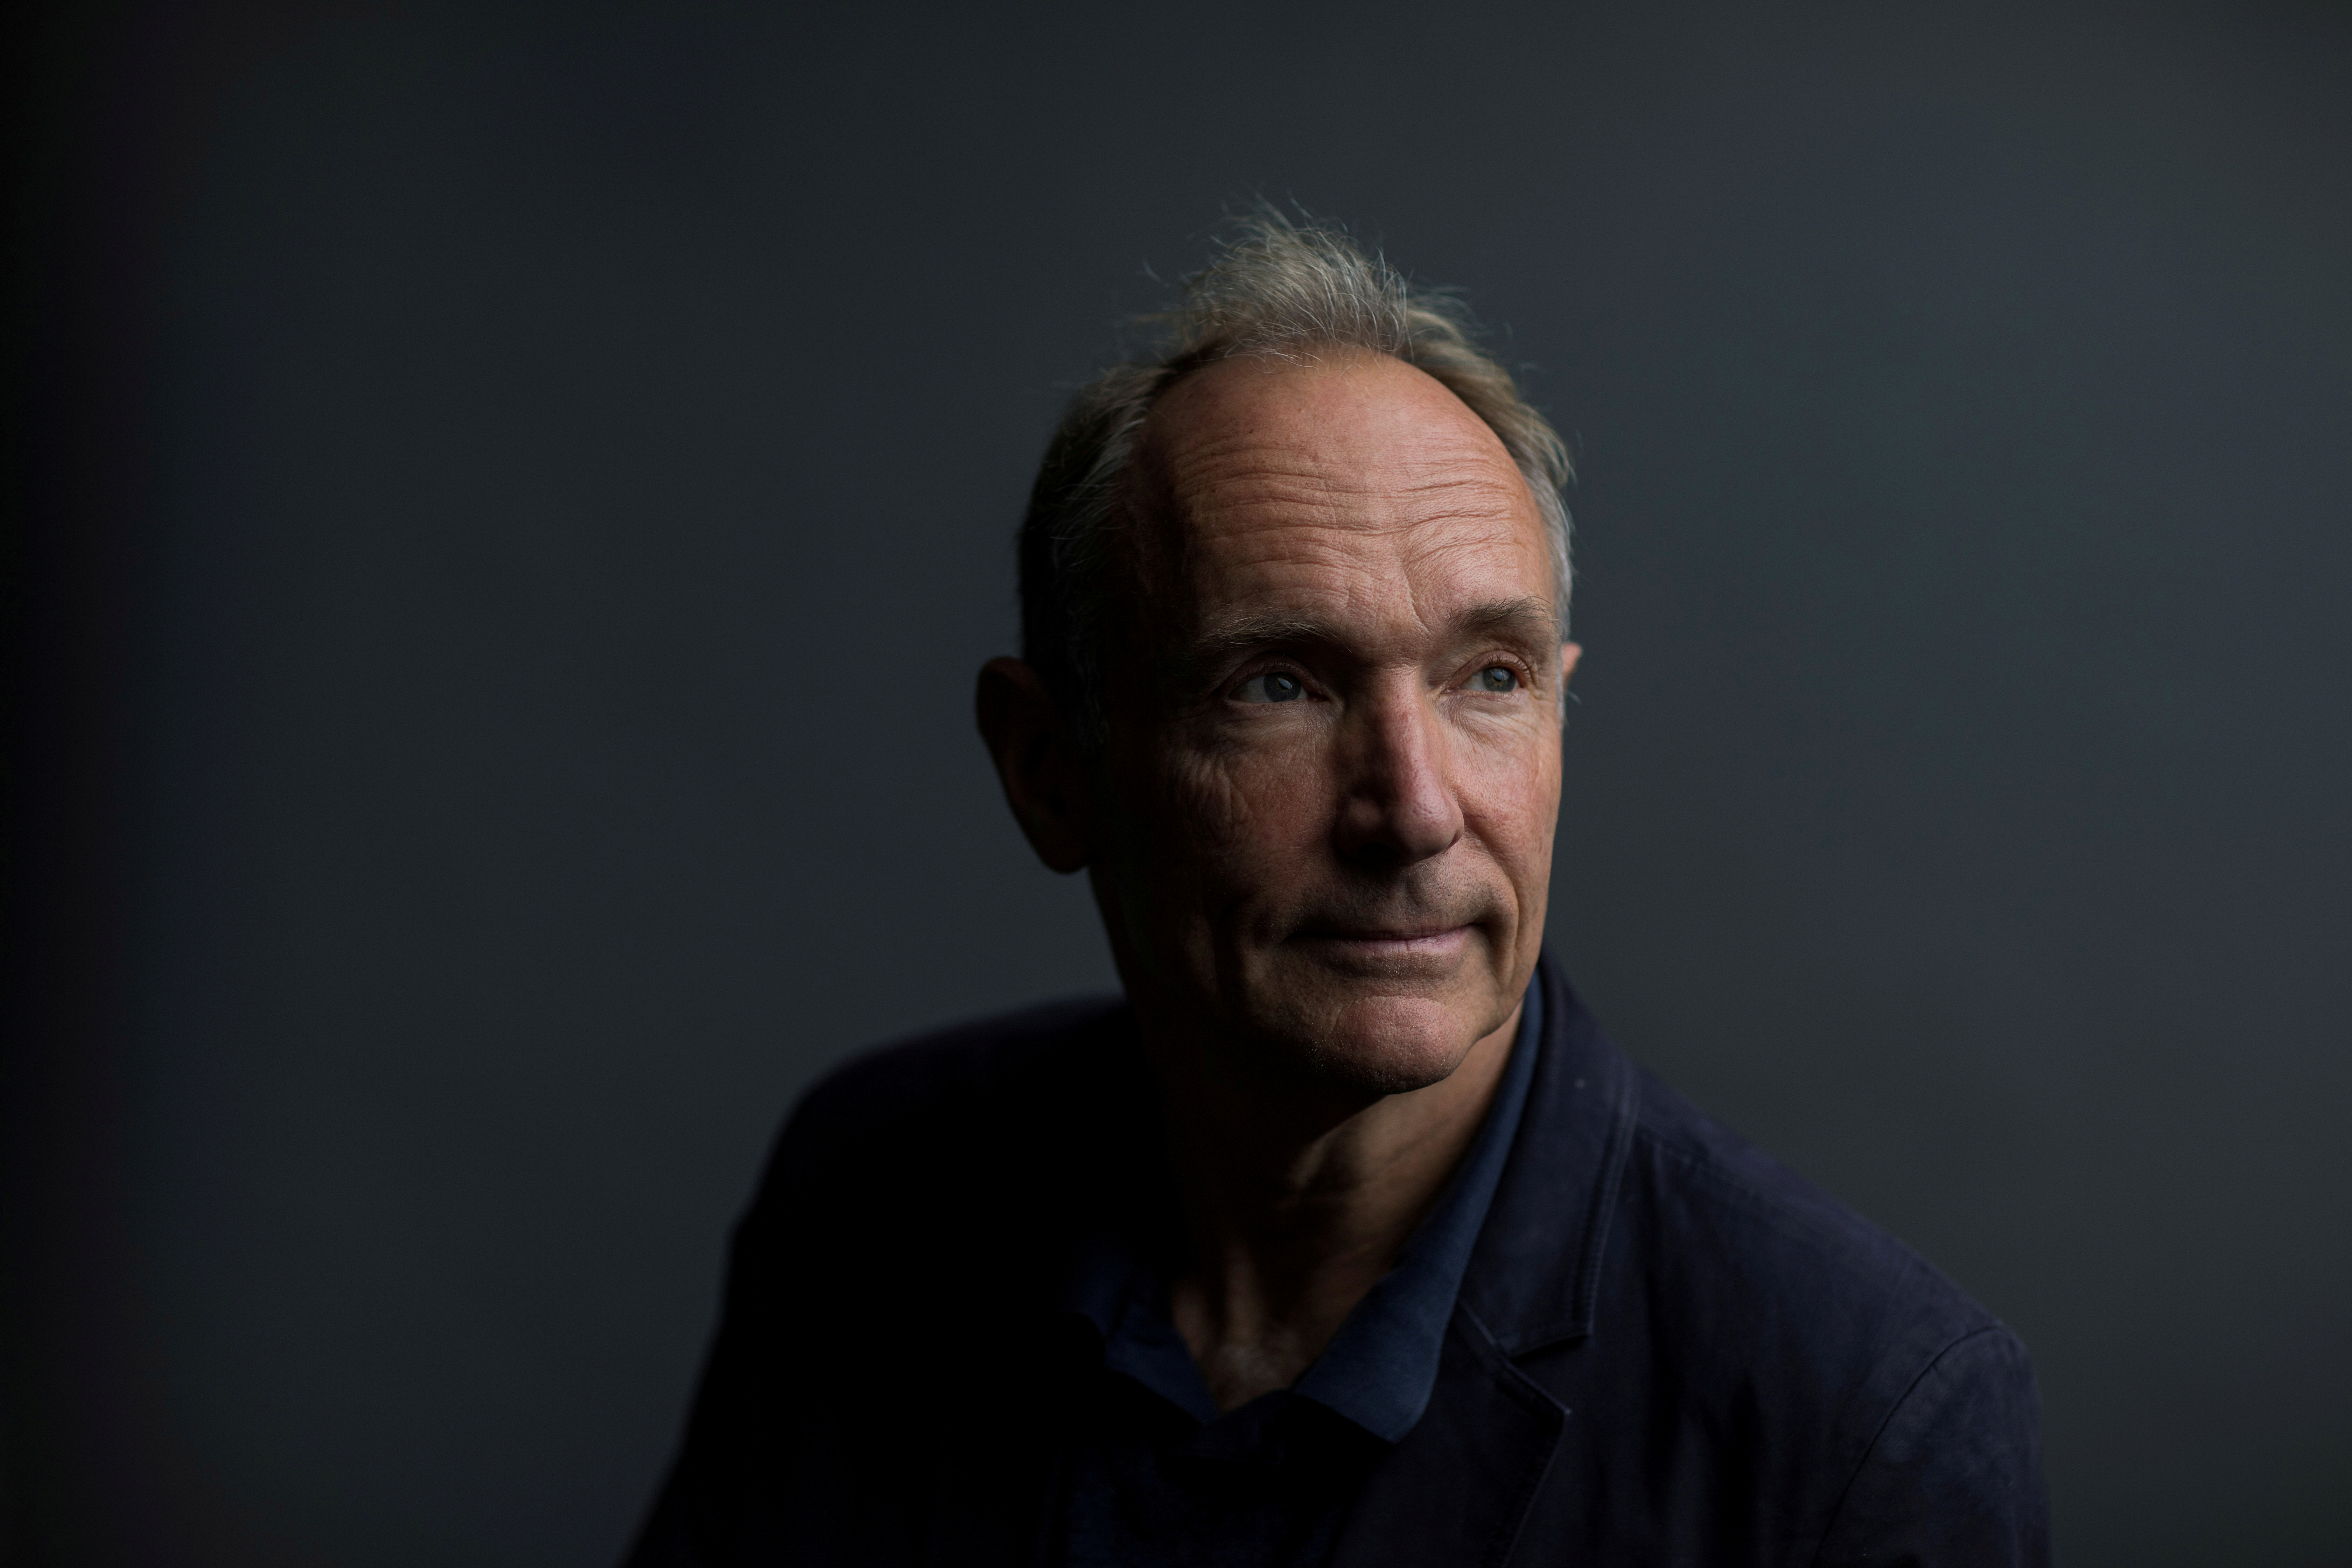 World Wide Web founder Tim Berners-Lee poses for a photograph following a speech at the Mozilla Festival 2018 in London, Britain October 27, 2018. REUTERS/Simon Dawson/File Photo